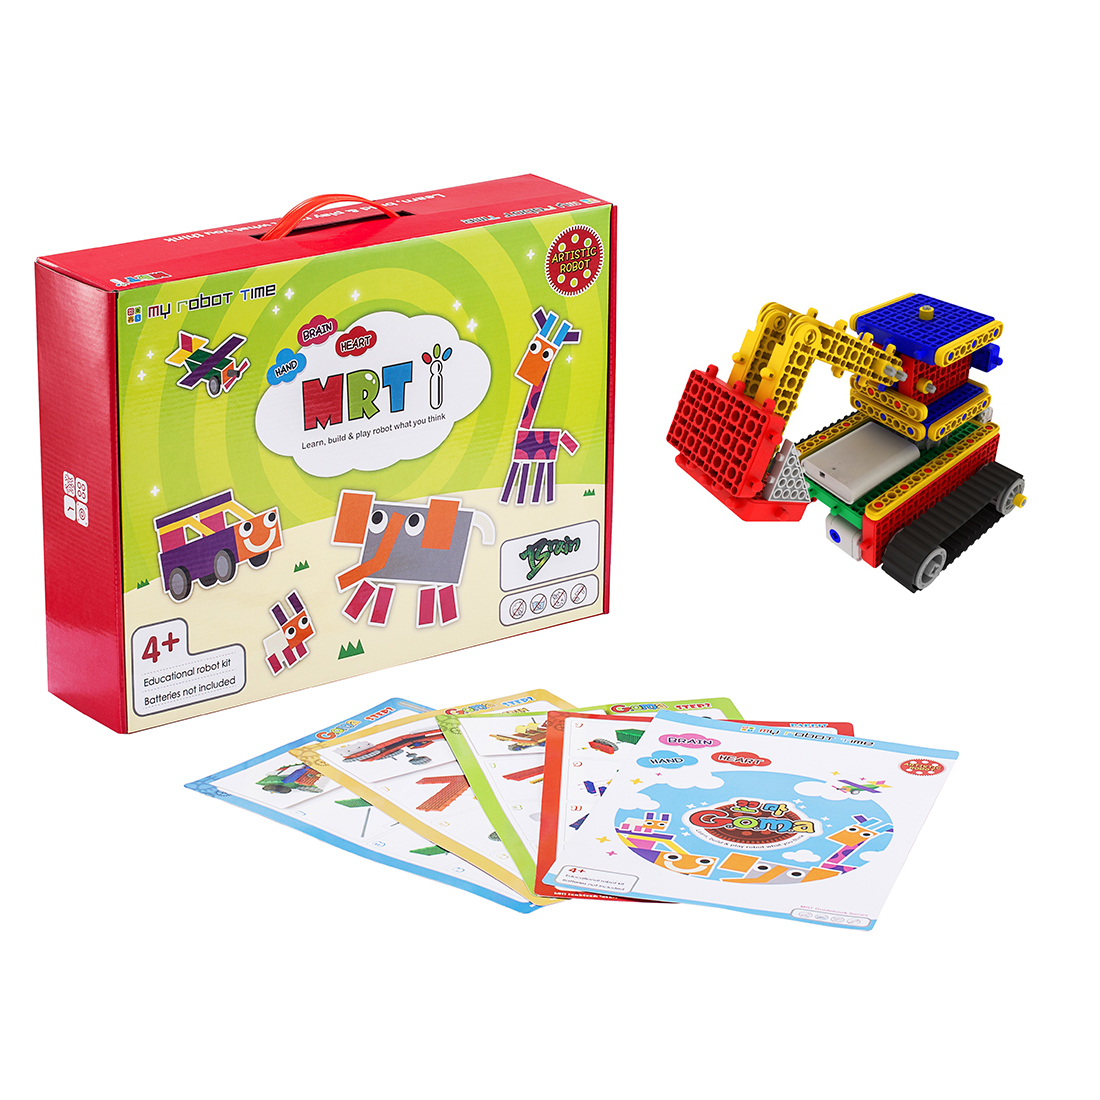 My Robot Time MRT 1-Goma Hand Colorful Robots Building Block Kit Assembly Educational Robot Toy For Beginner 4-5 Years Old